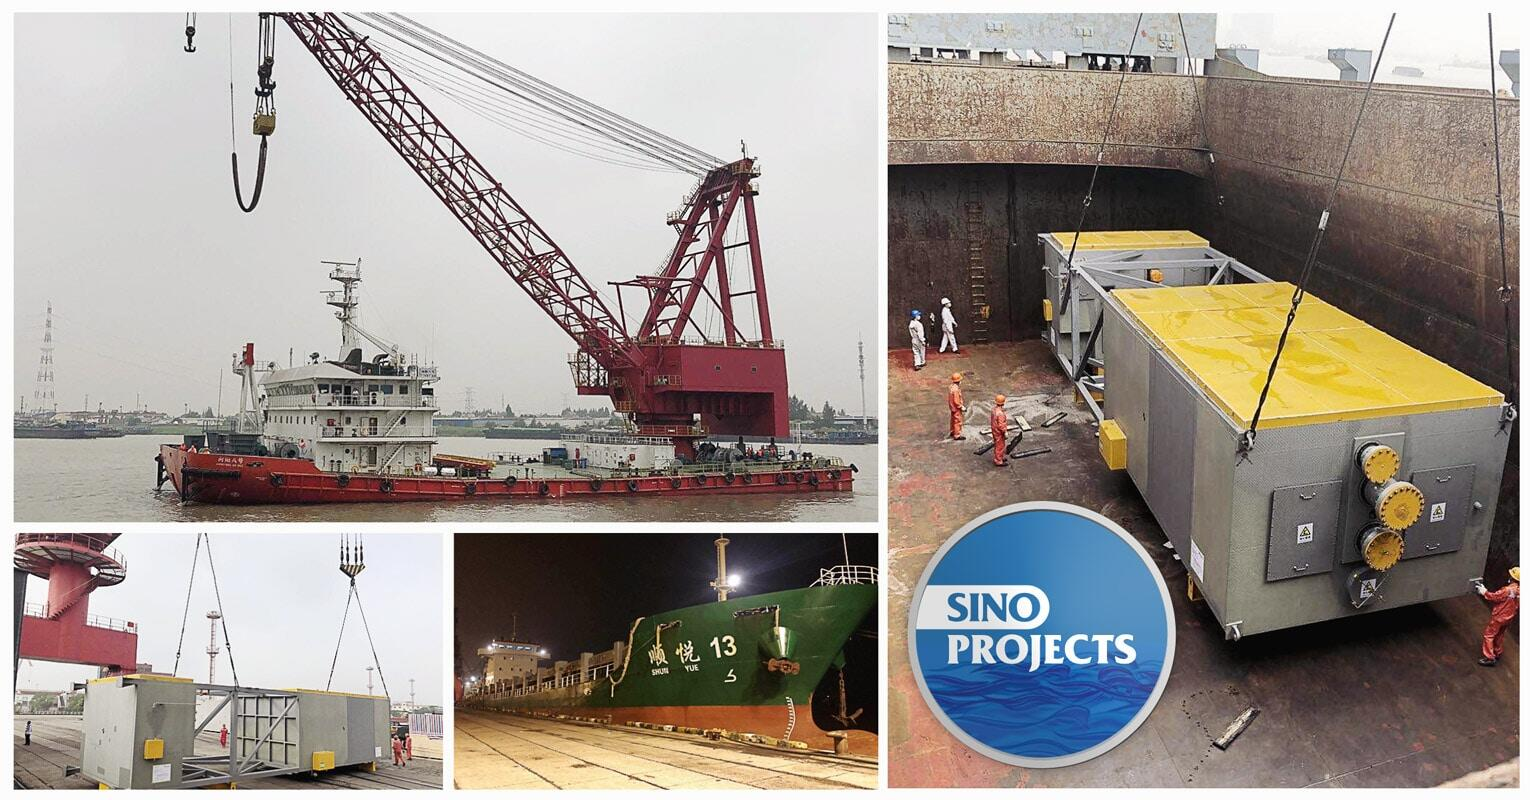 Sino Projects Loaded Another Cold Box in Shanghai Destined for South Korea